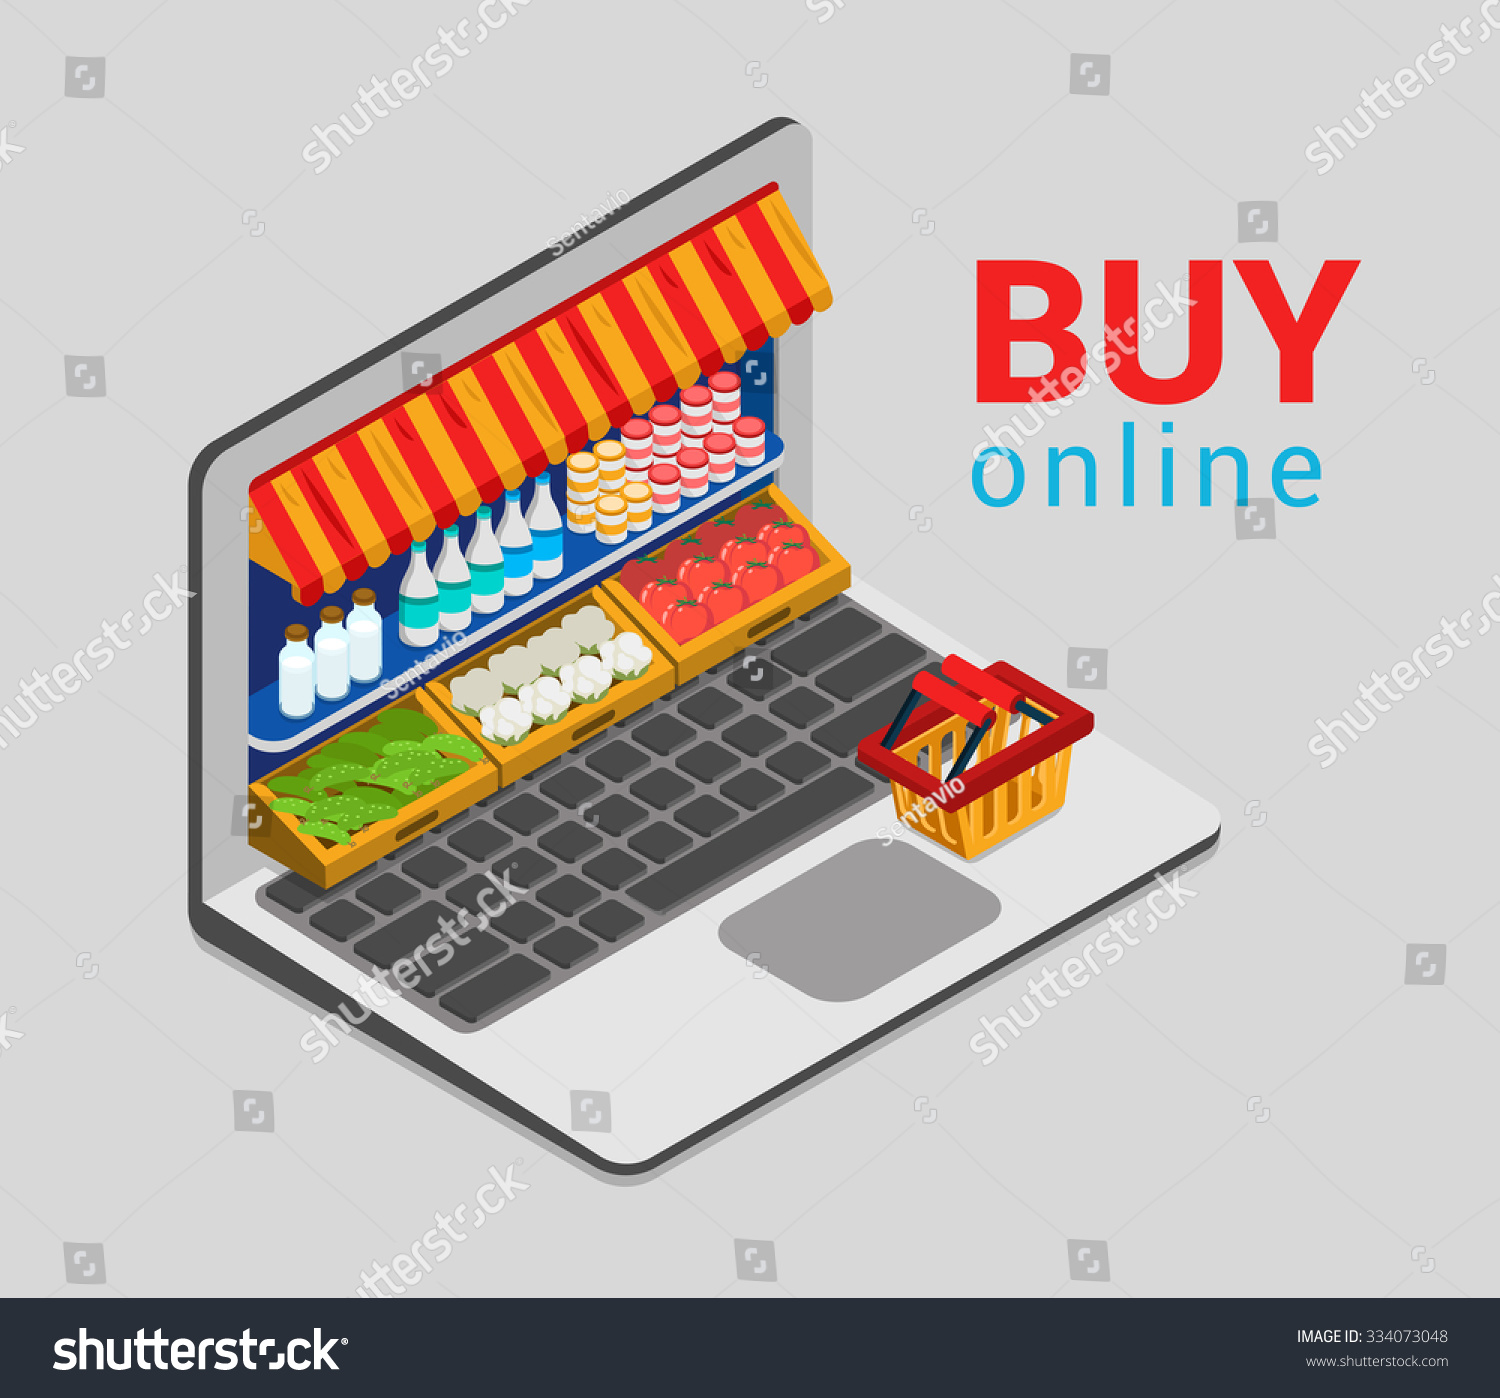 laptop buy online grocery shopping ecommerce stock vector 334073048 shutterstock. Black Bedroom Furniture Sets. Home Design Ideas